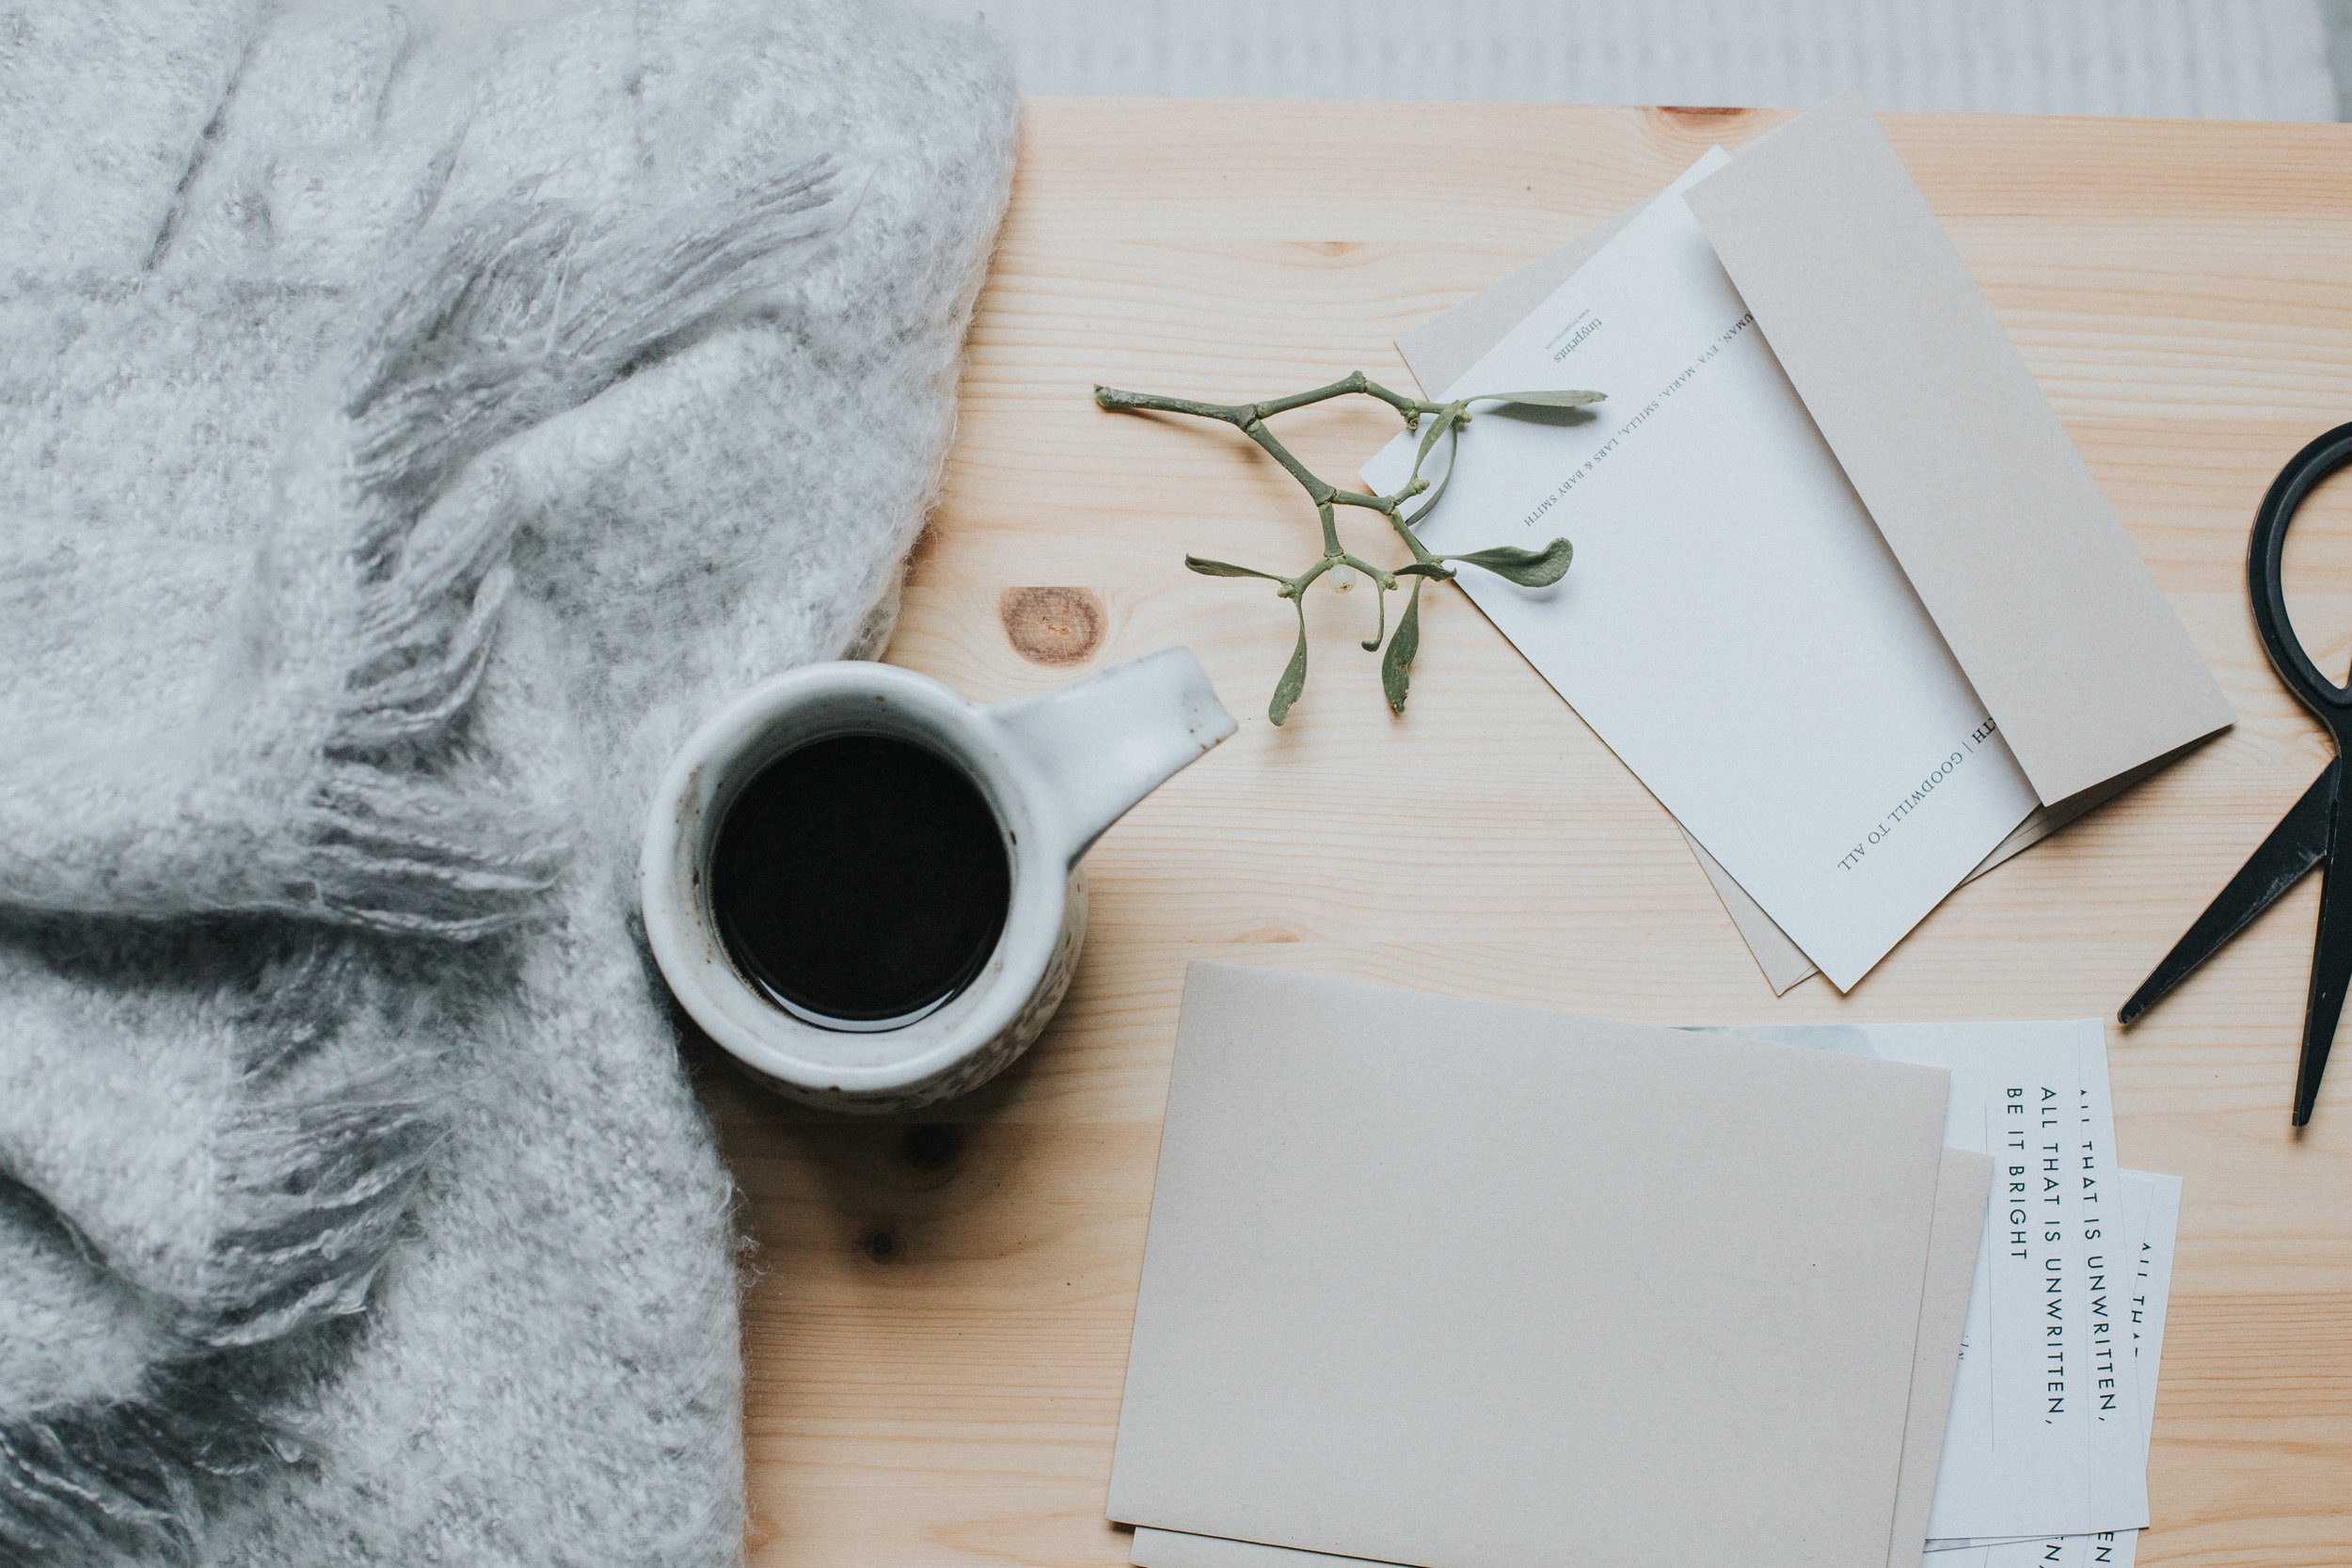 A blog about hygge, slow-living and simplifying www.houseofsmilla.com